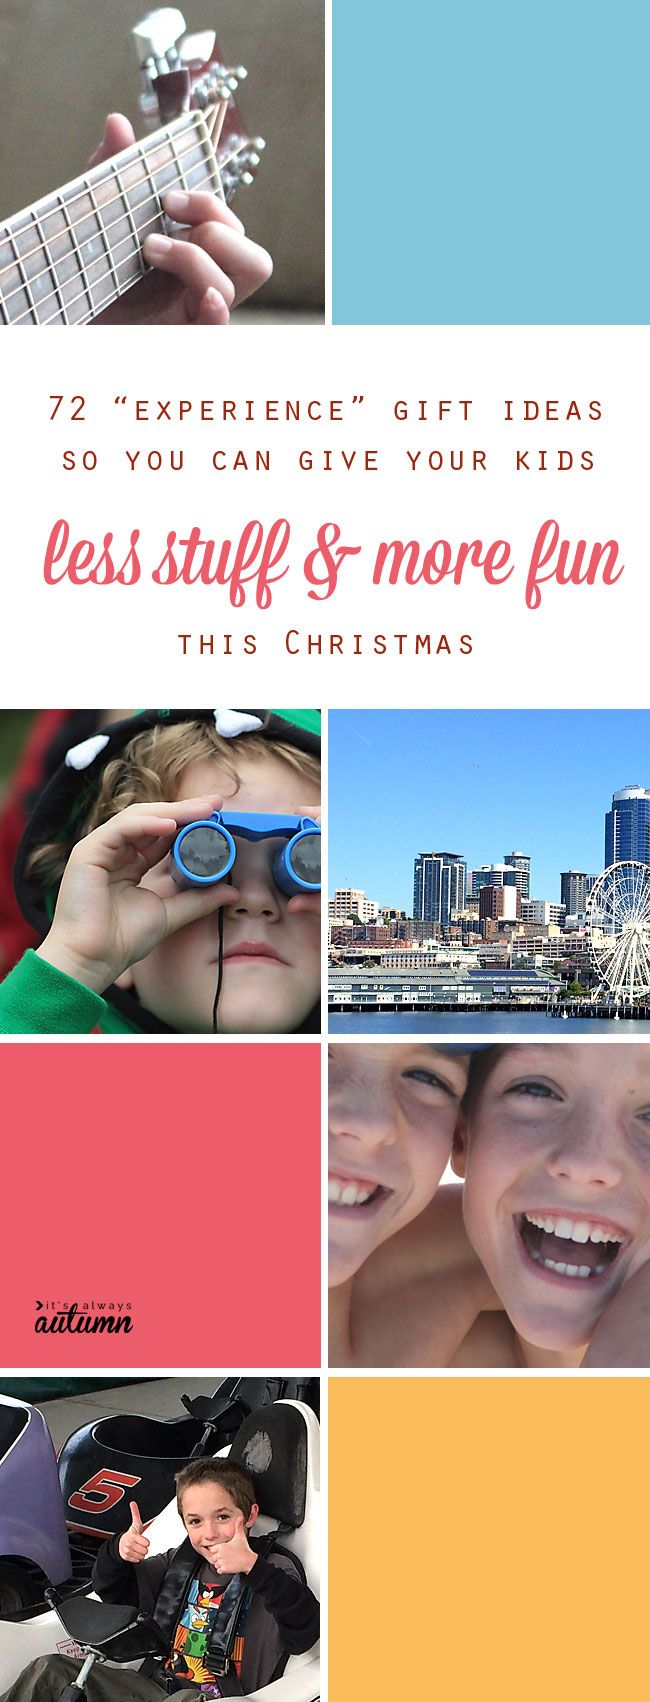 great Christmas gift ideas! give kids experiences instead of stuff - I love these ideas